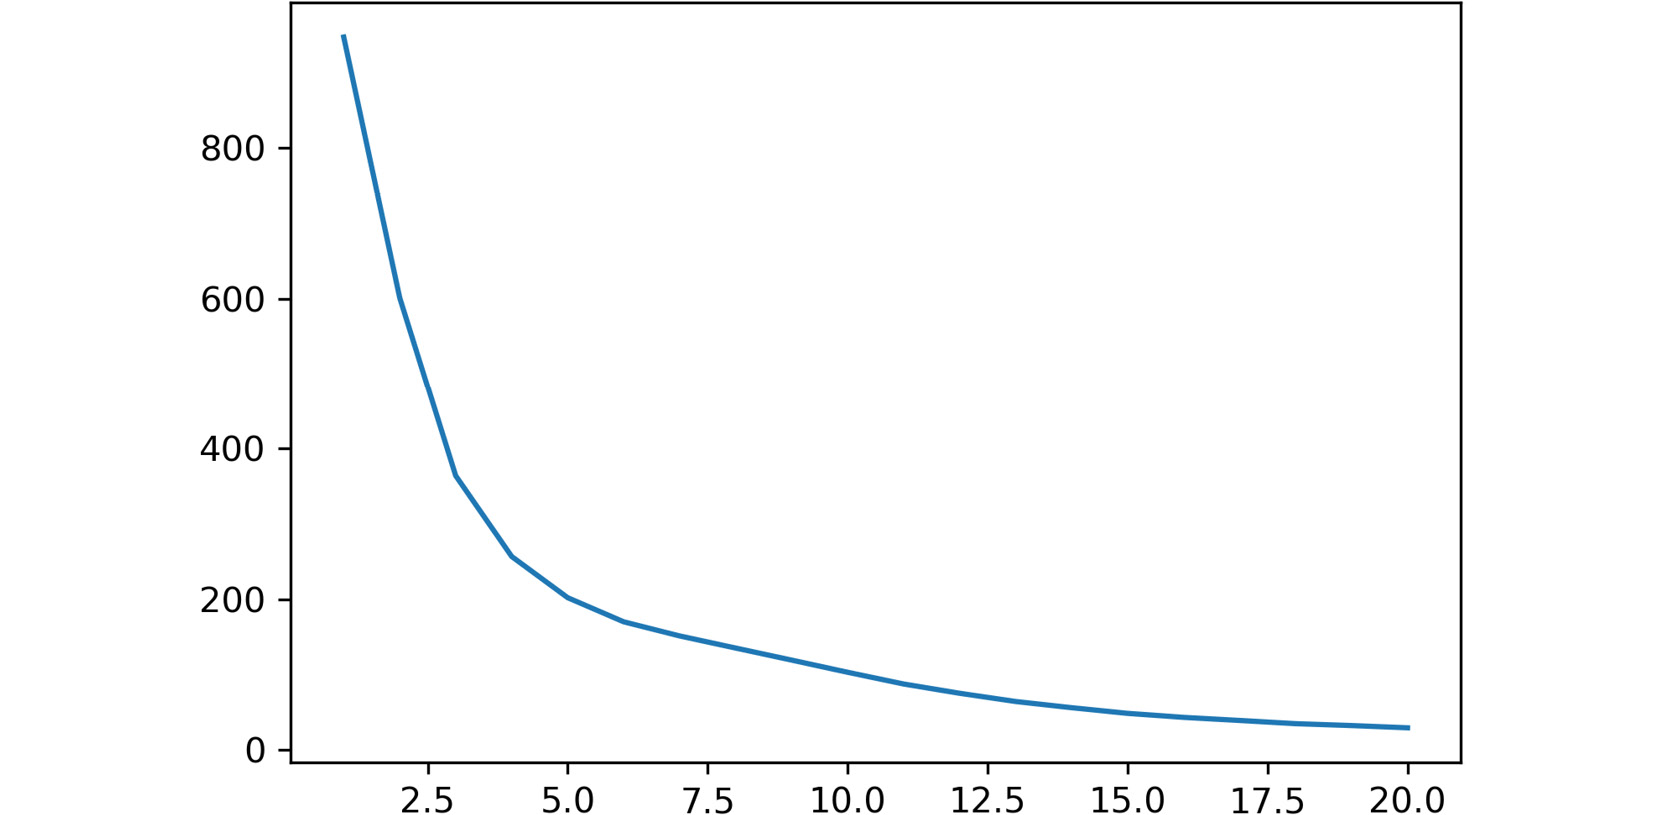 Figure 2.7: A screenshot showing the output of the plot function used